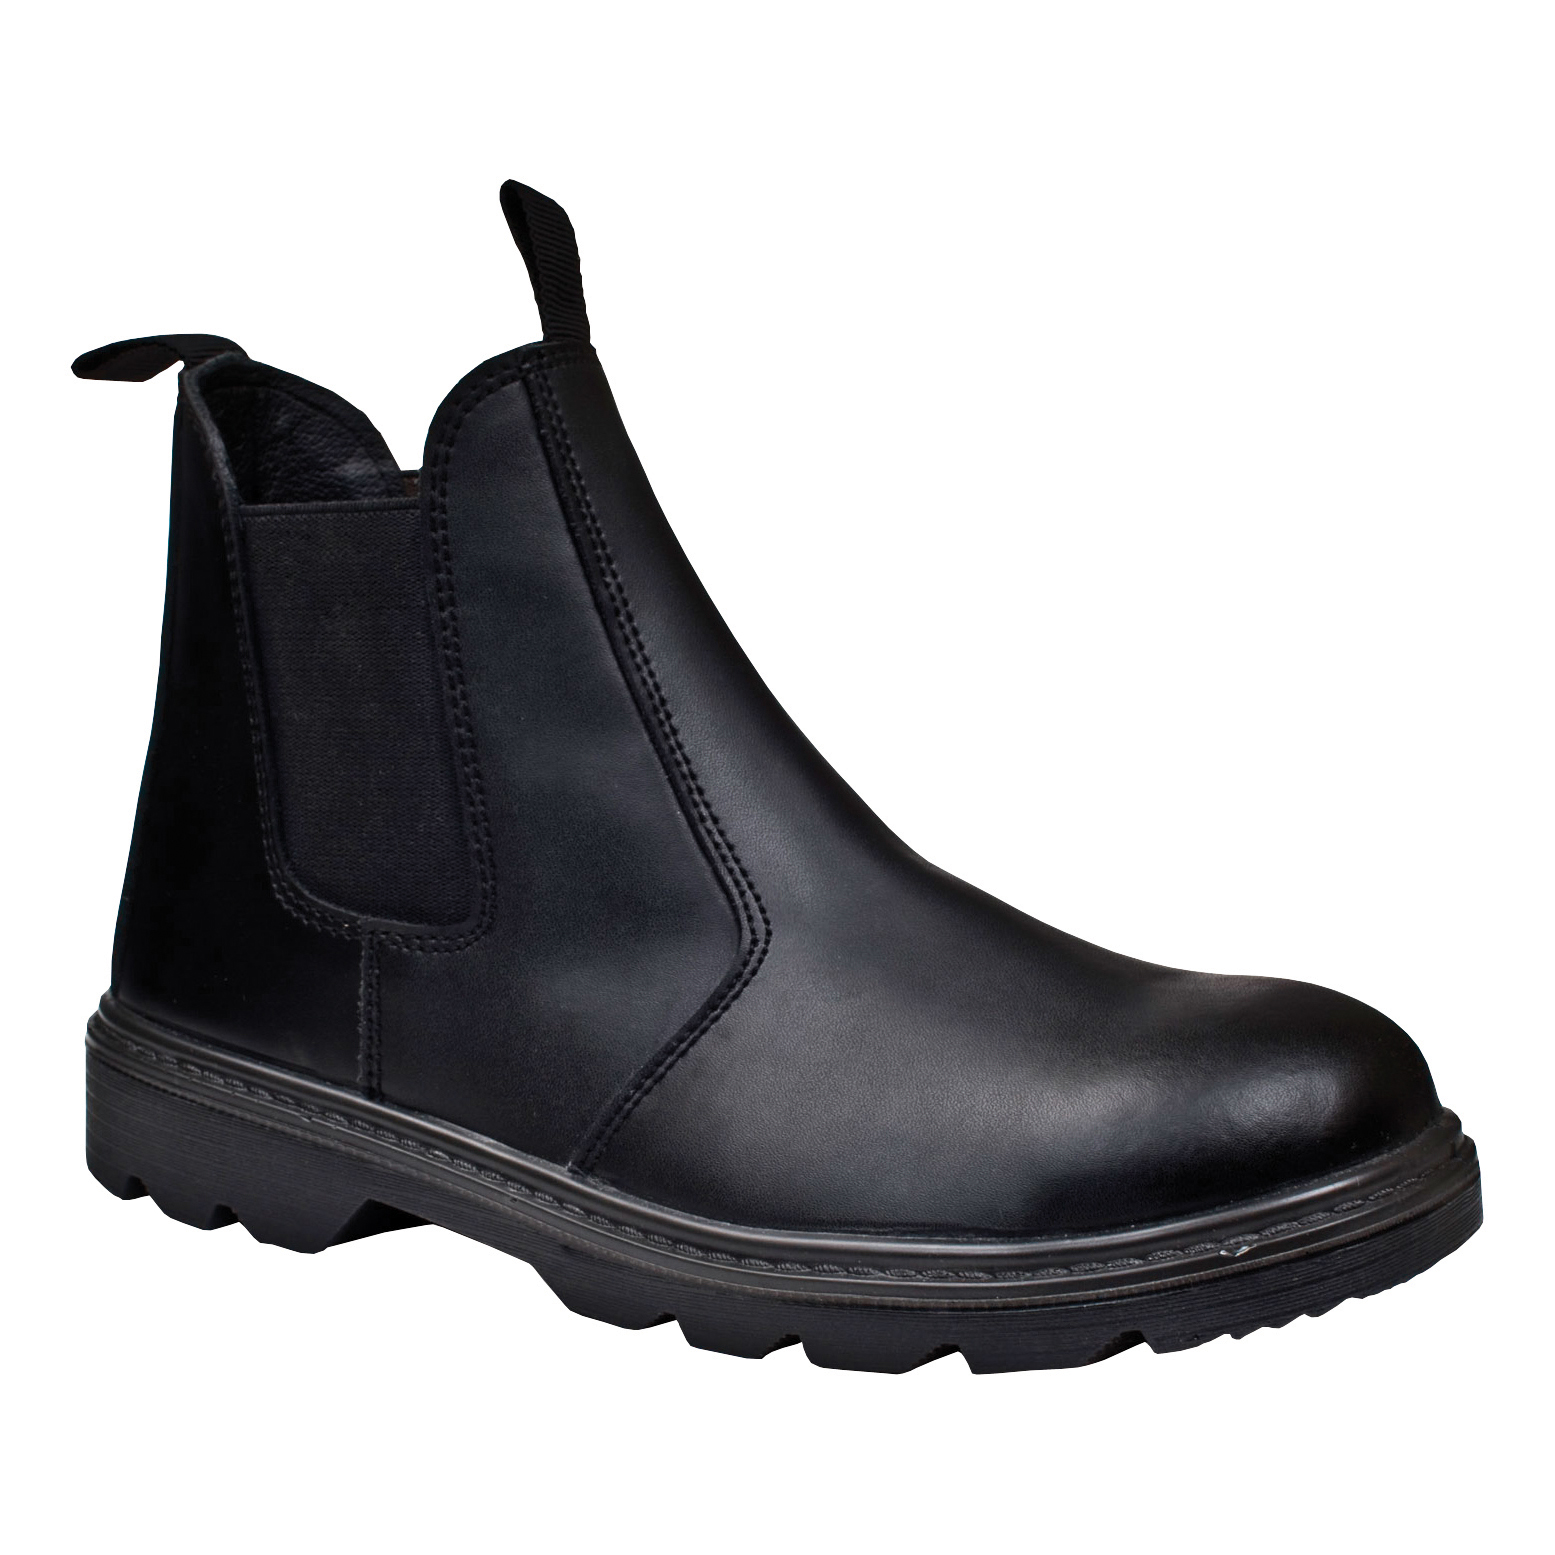 ST Dealer Boot Leather Pull-On Design with Safety Toecap Size 11 Black Ref 93276 *Approx 3 Day Leadtime*